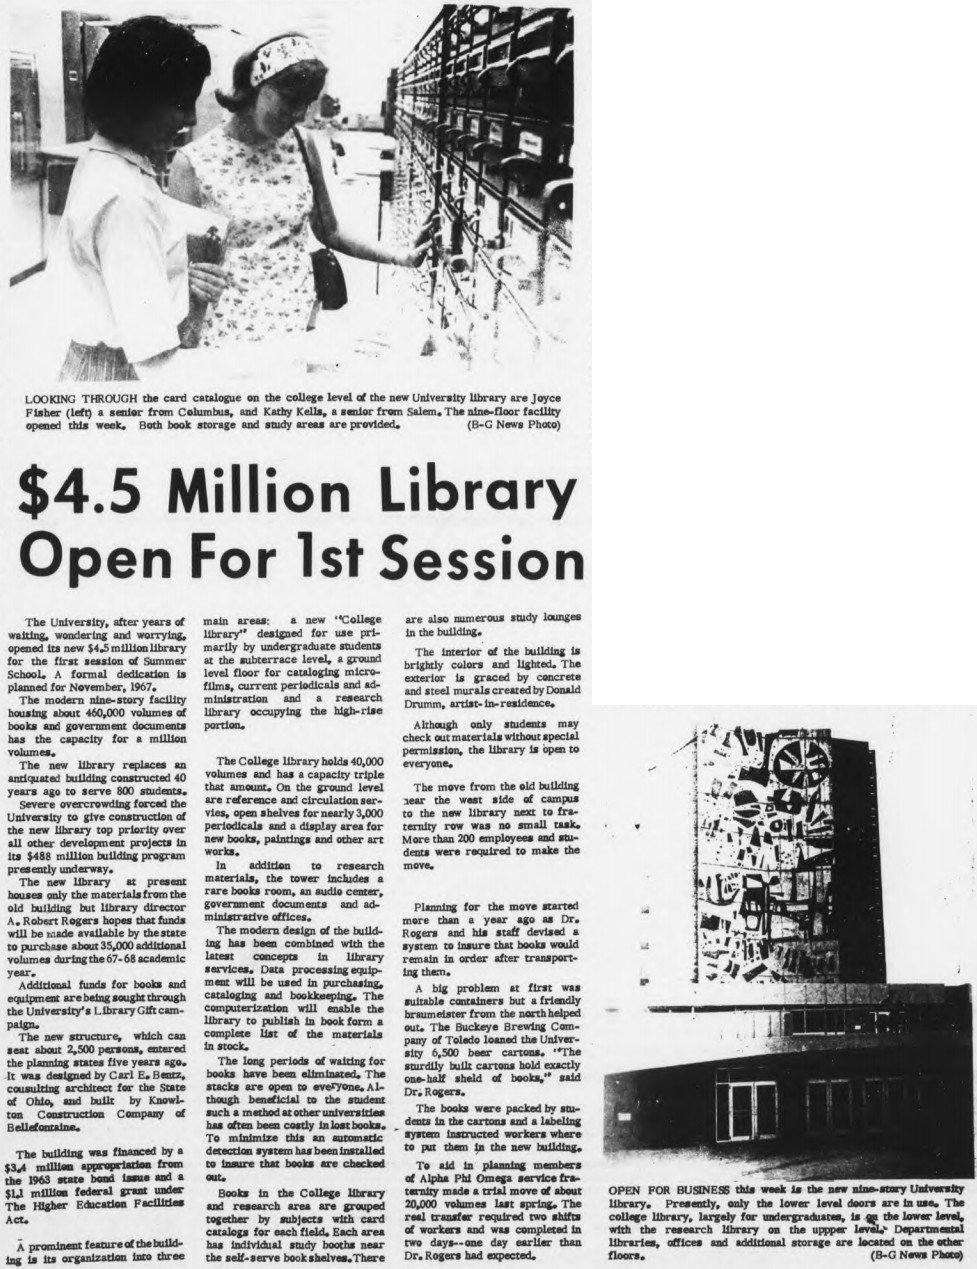 4.5 Million Dollar Library Open for 1st Session